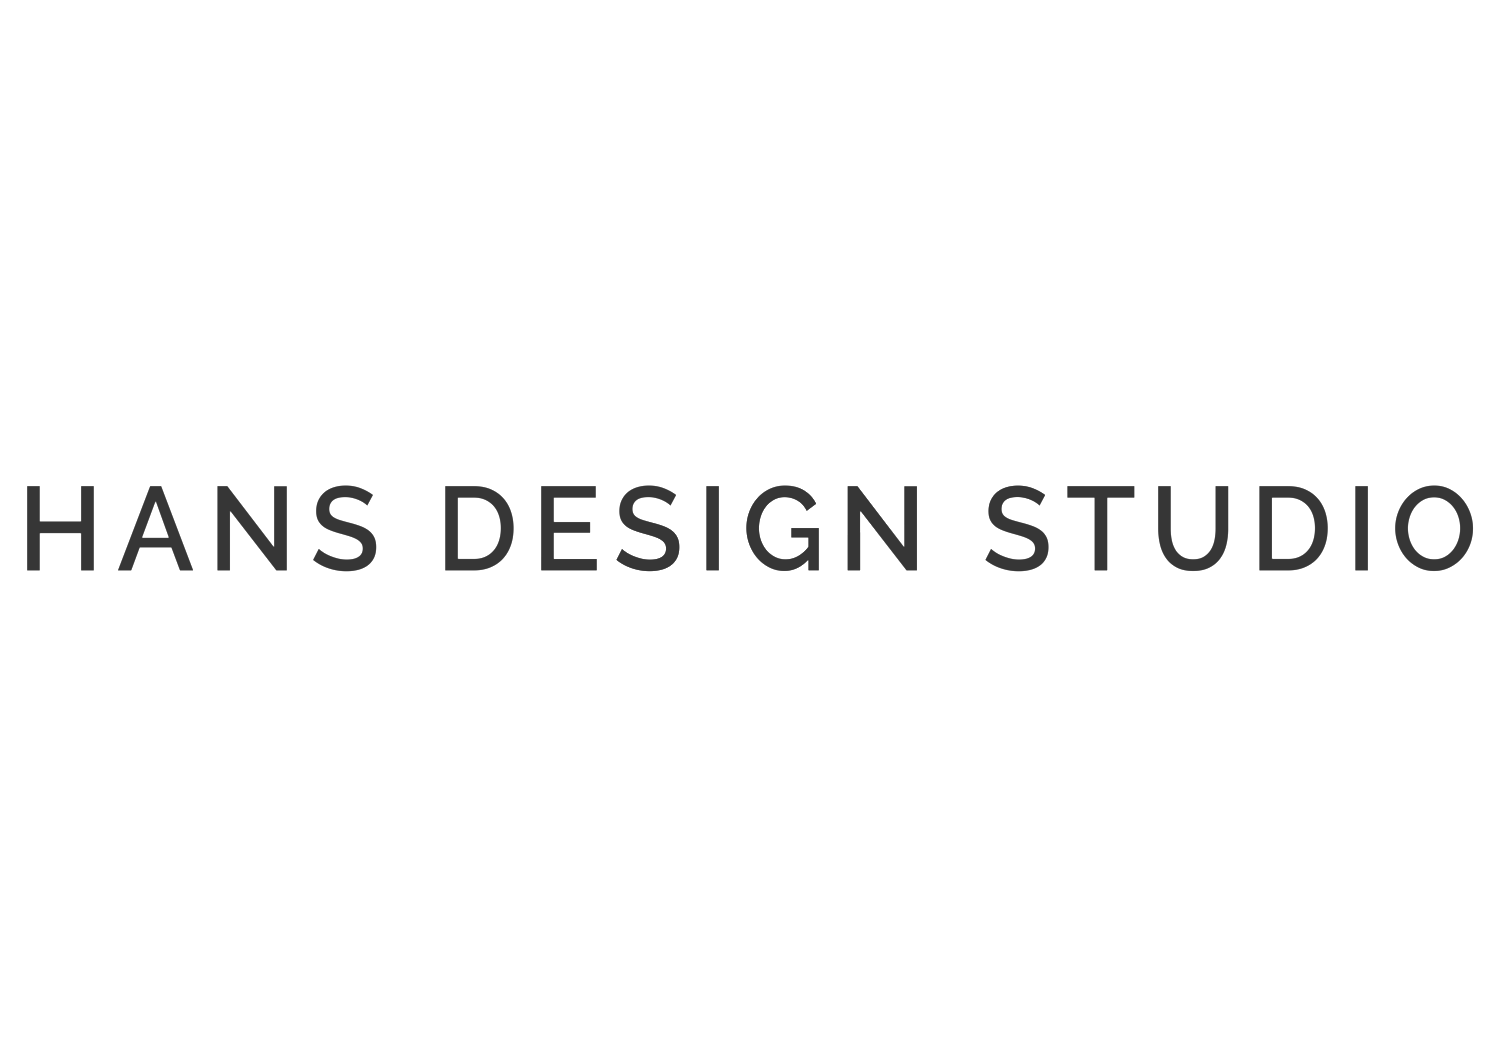 Hans Design Studio